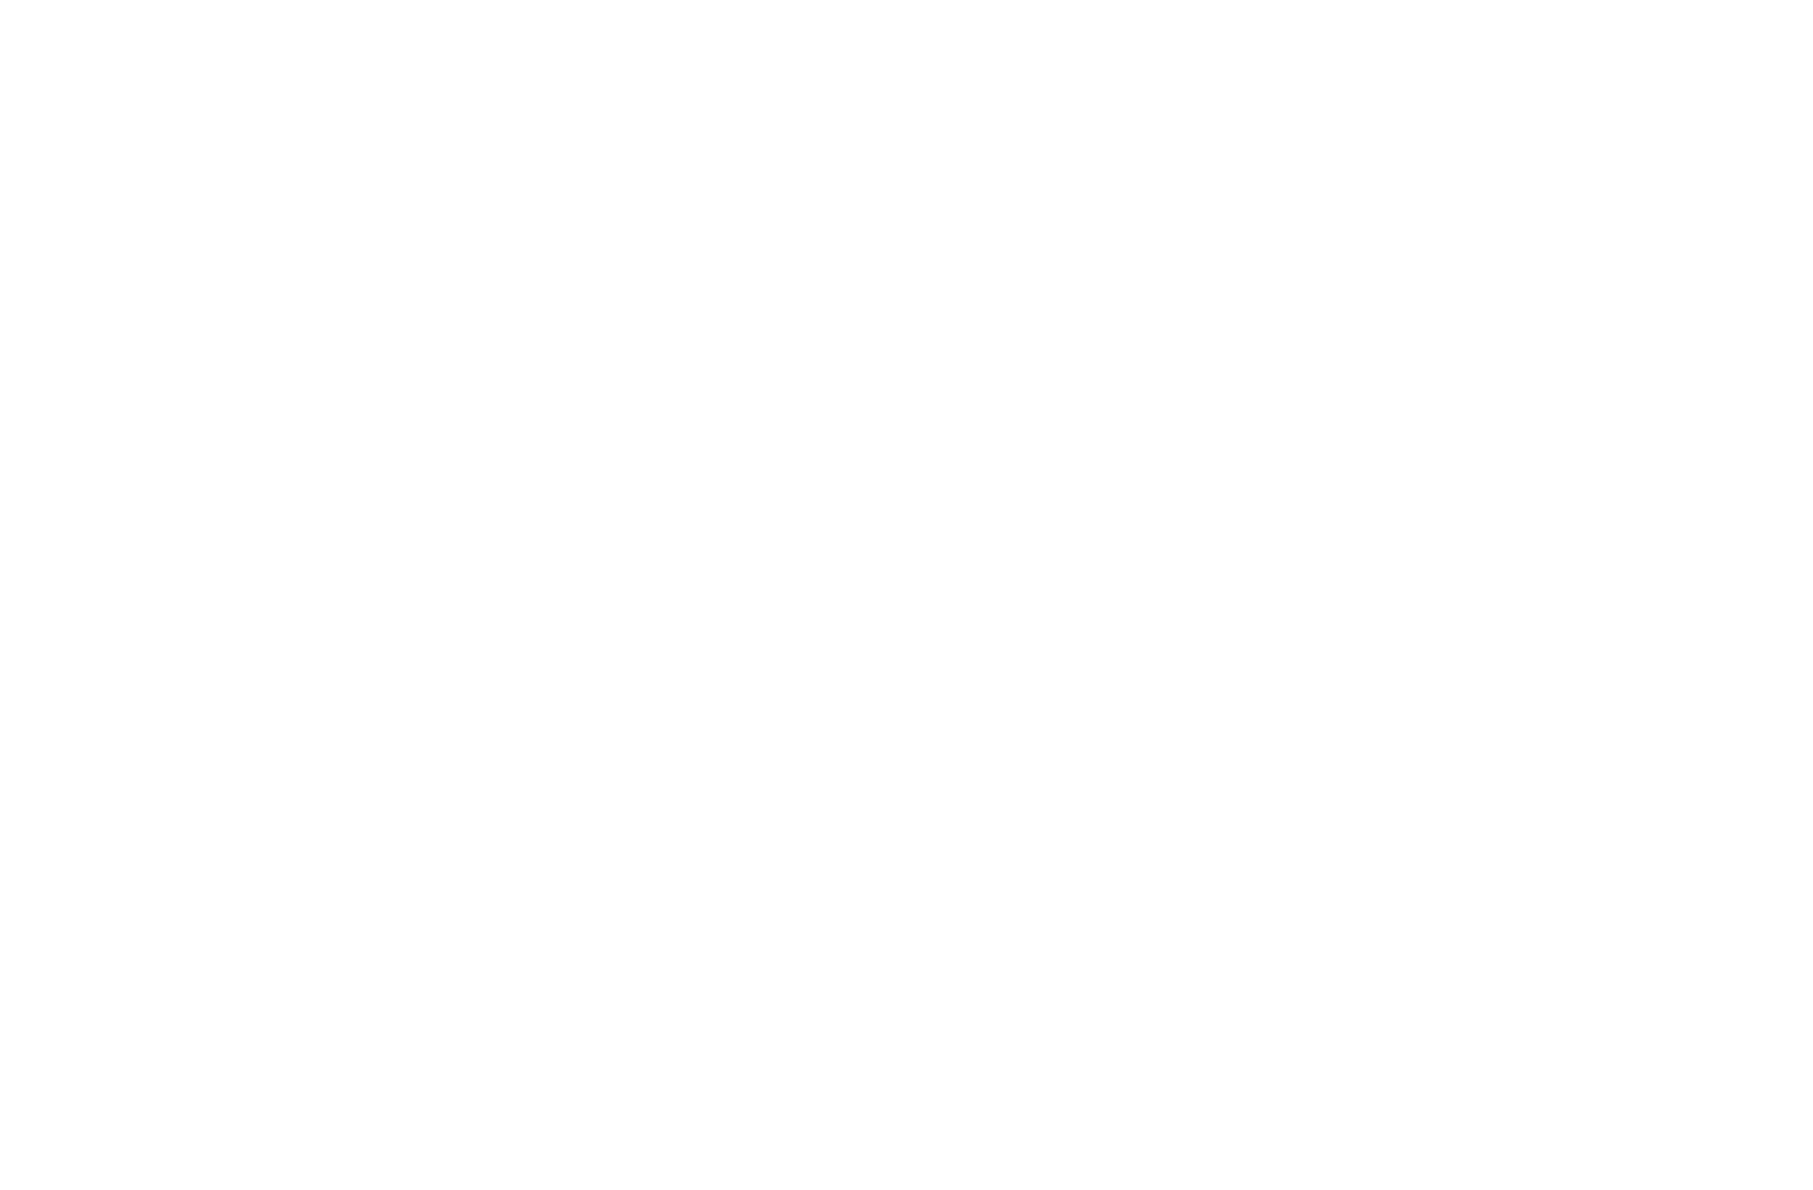 apartment under a2 by anthem house